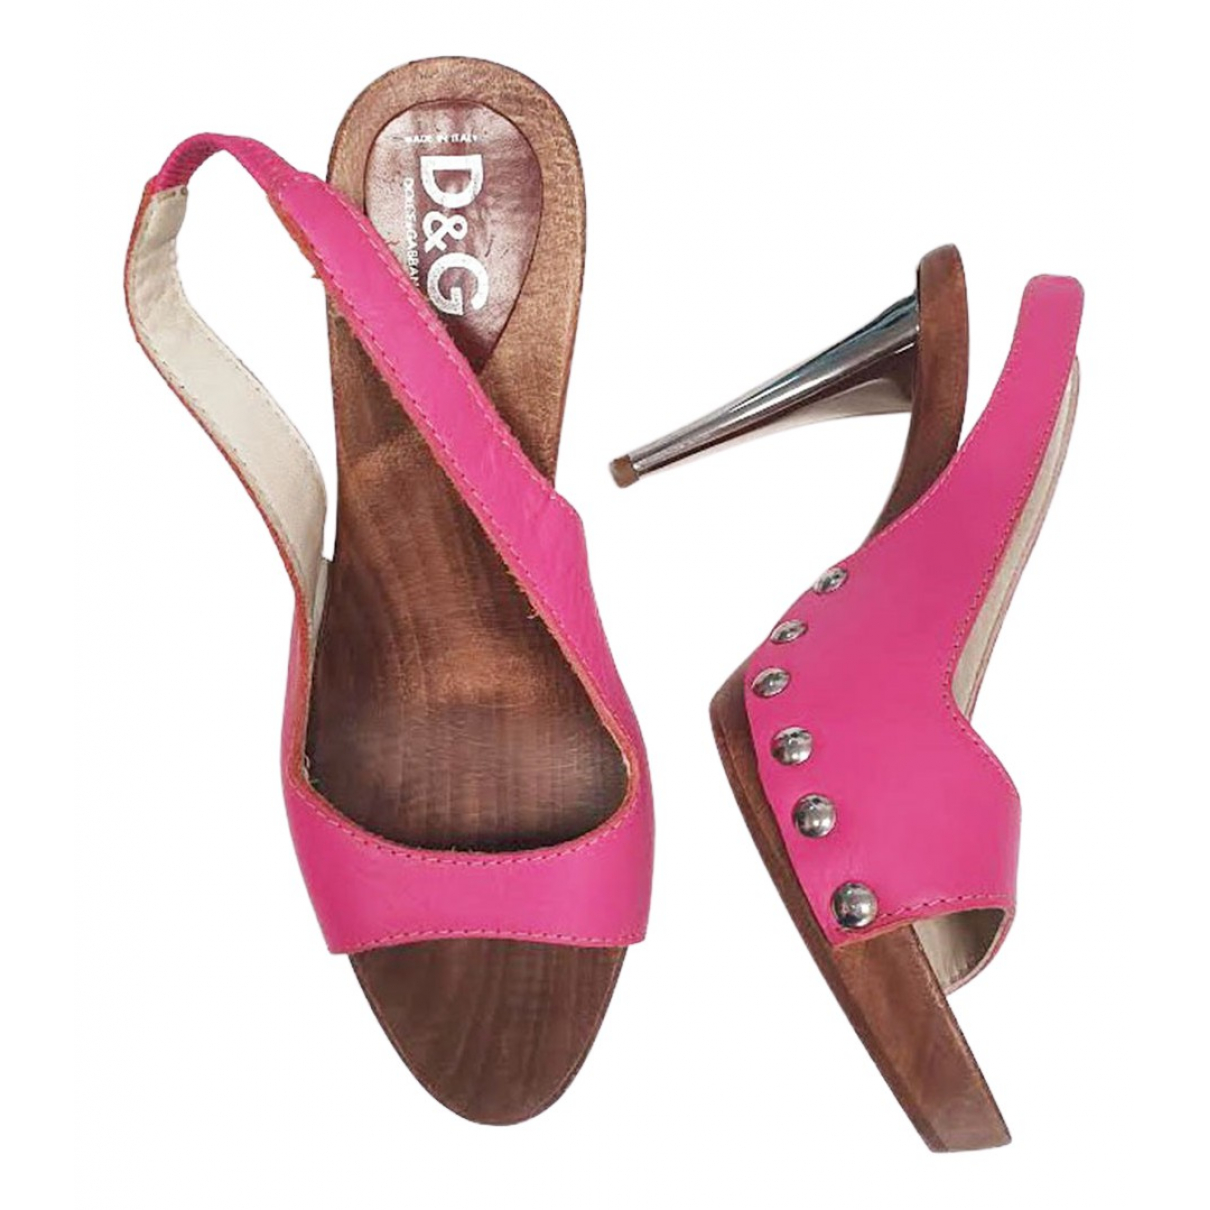 D&g \N Pink Leather Sandals for Women 39.5 EU